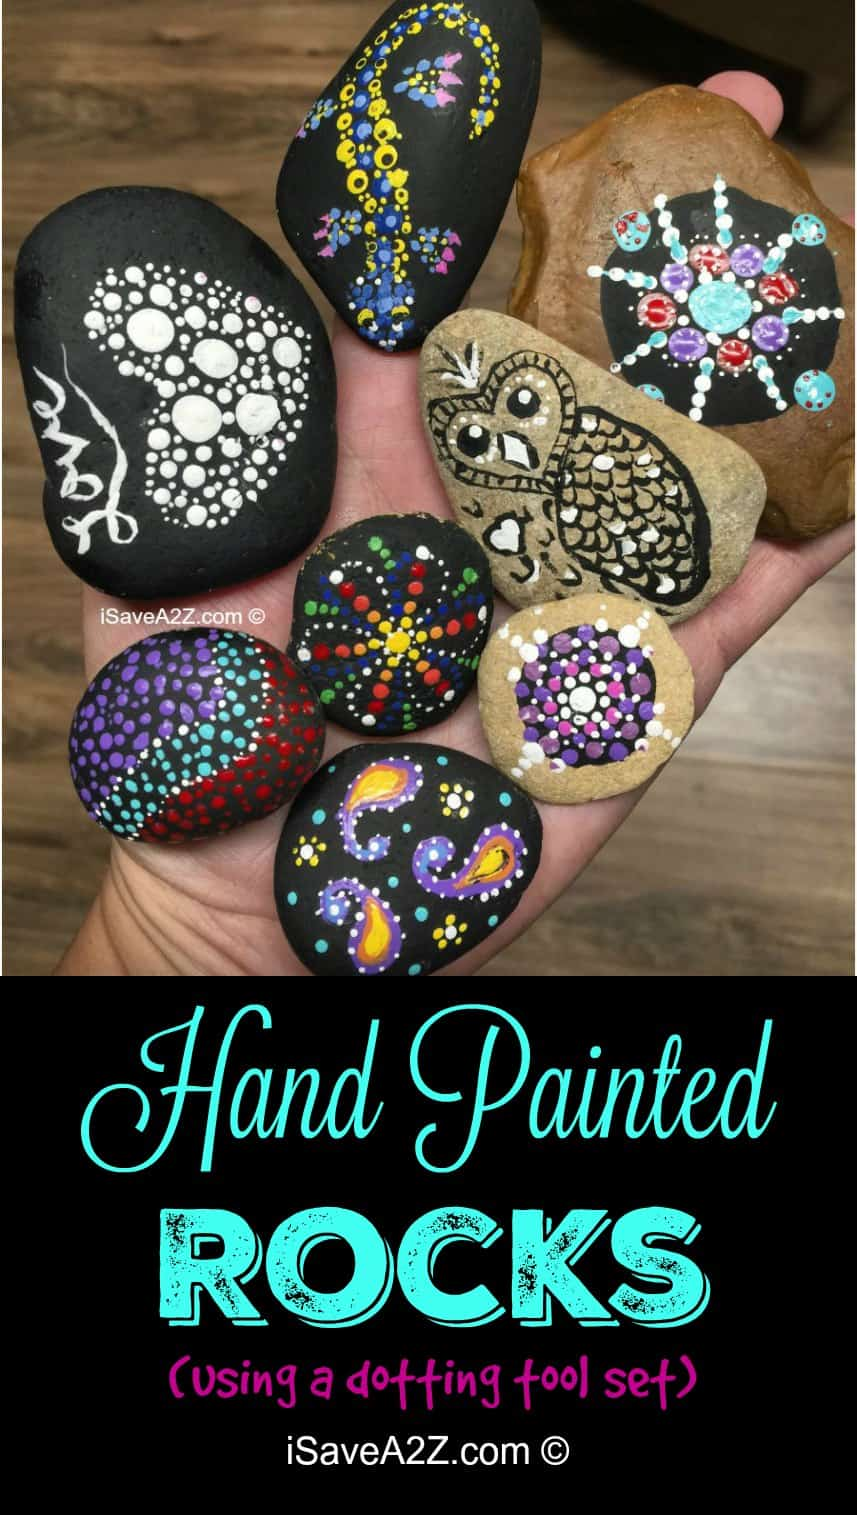 Hand Painted Rock Design Ideas